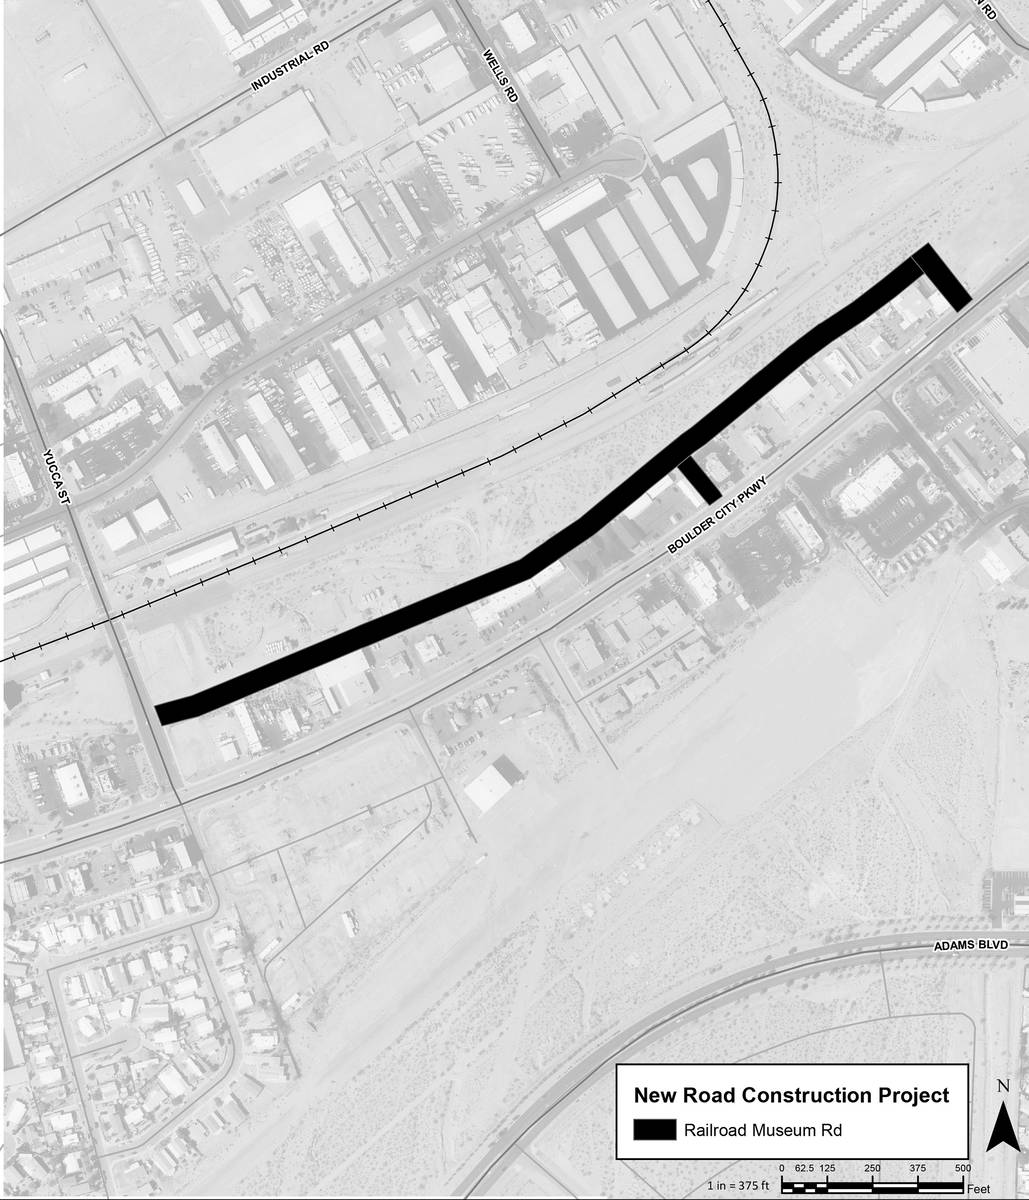 The city is holding a public meeting from 4-5:30 p.m. today about the access road for the propo ...